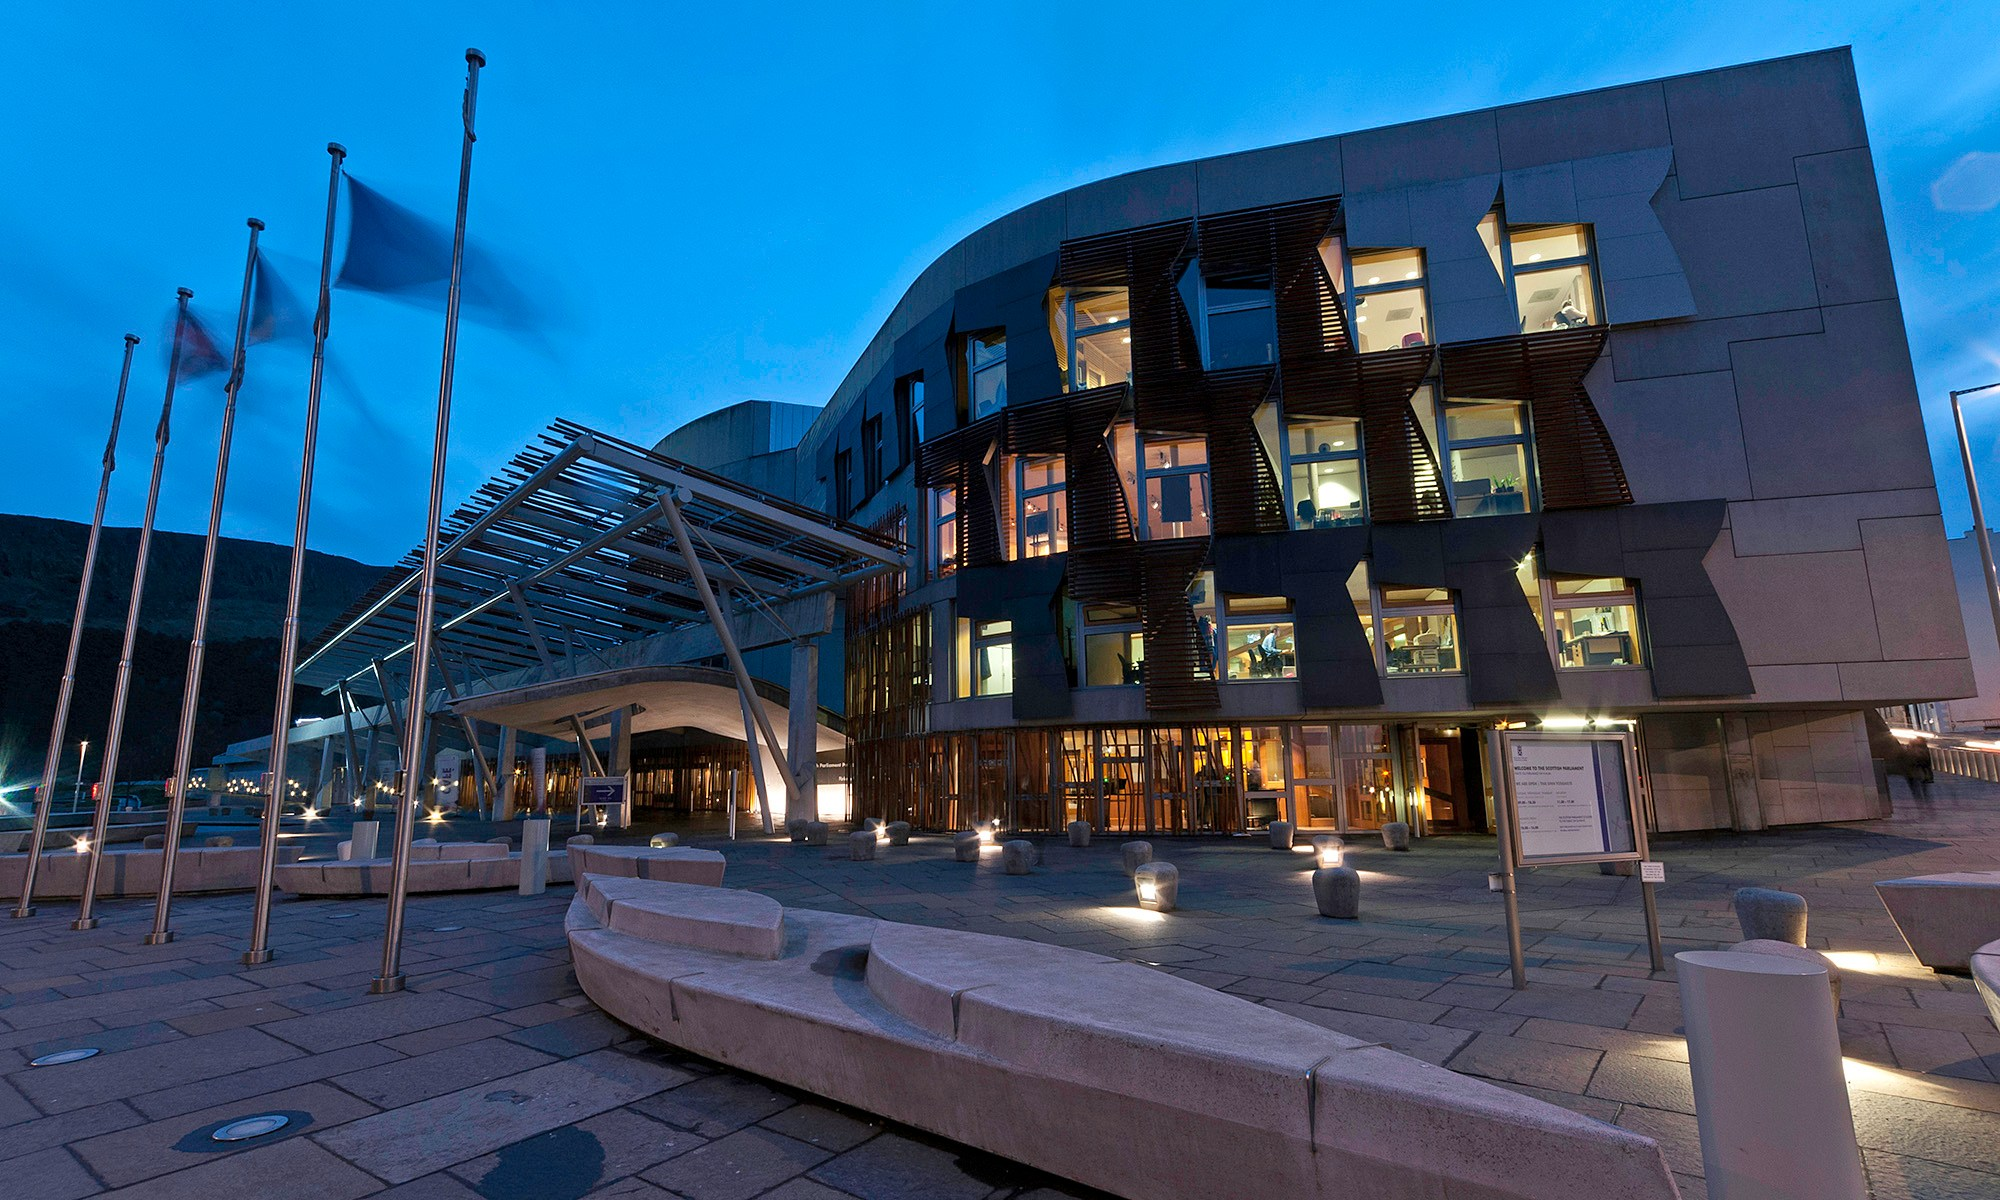 Scottish Parliament Building at Night